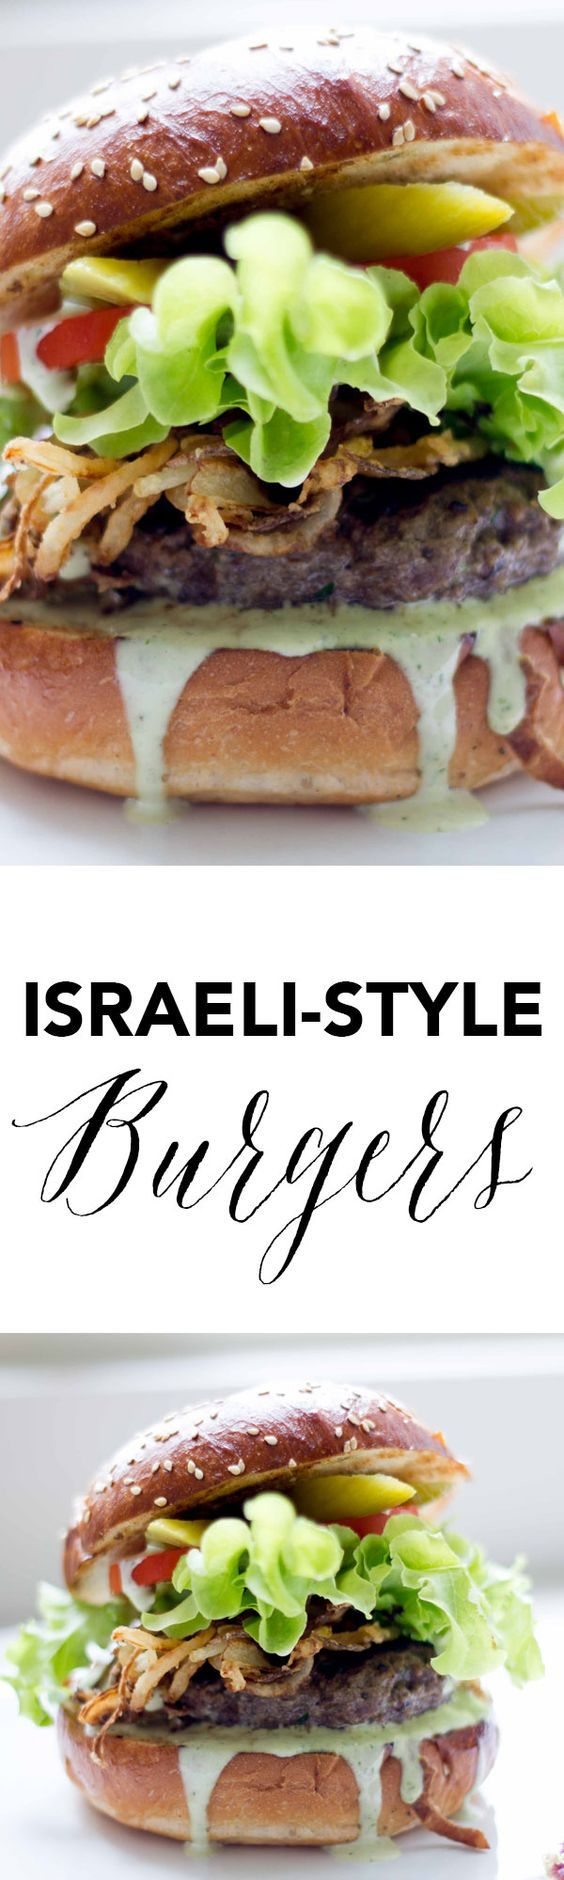 These Israeli style burgers are a great twist on a classic with za'atar spiced buns, spicy green tahini sauce, and middle-eastern flavored beef patties!